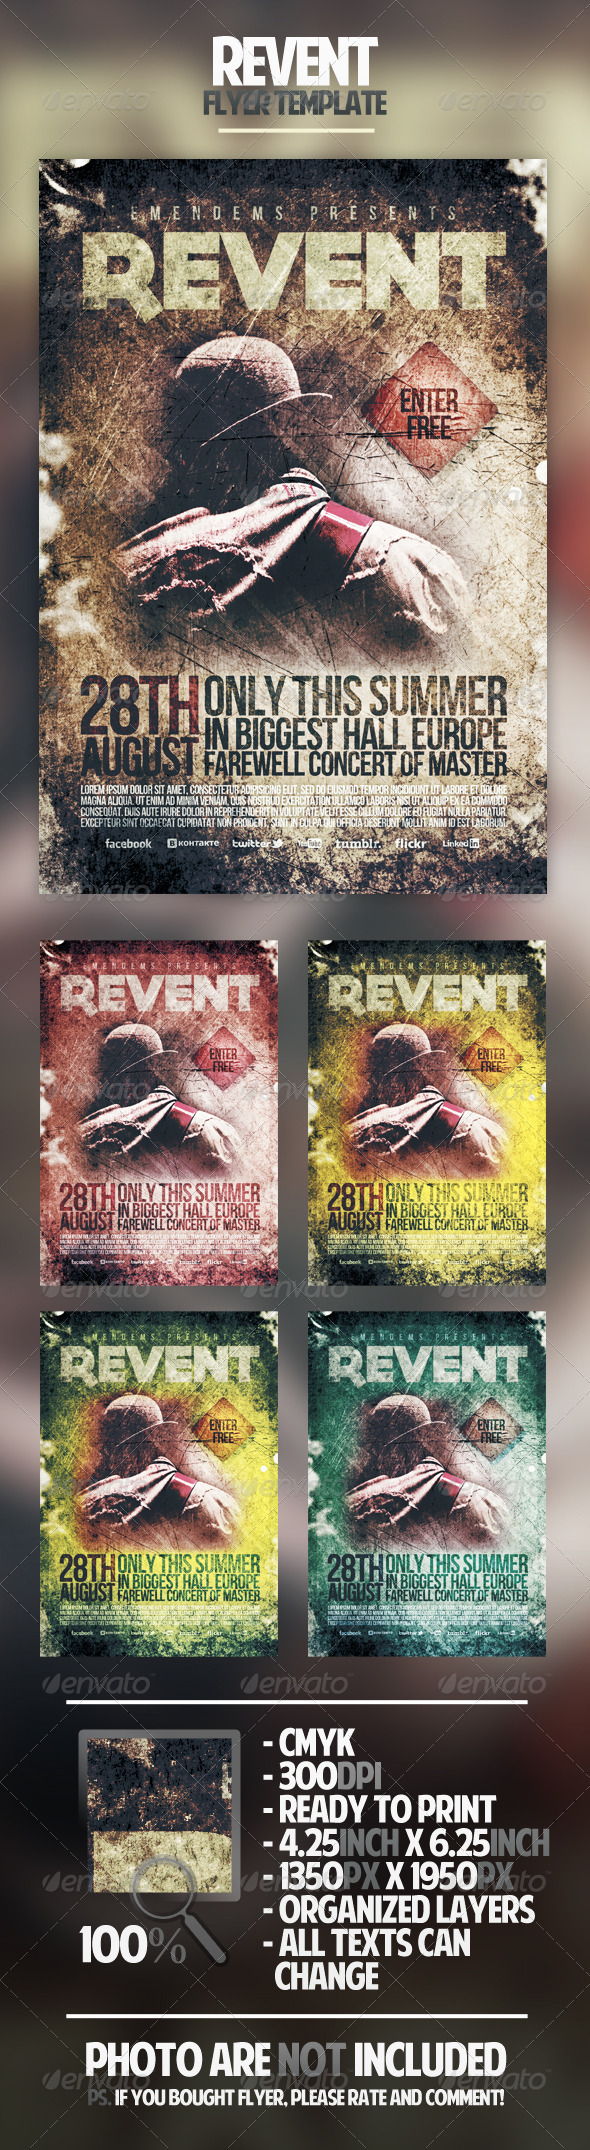 Revent Flyer Template - Concerts Events